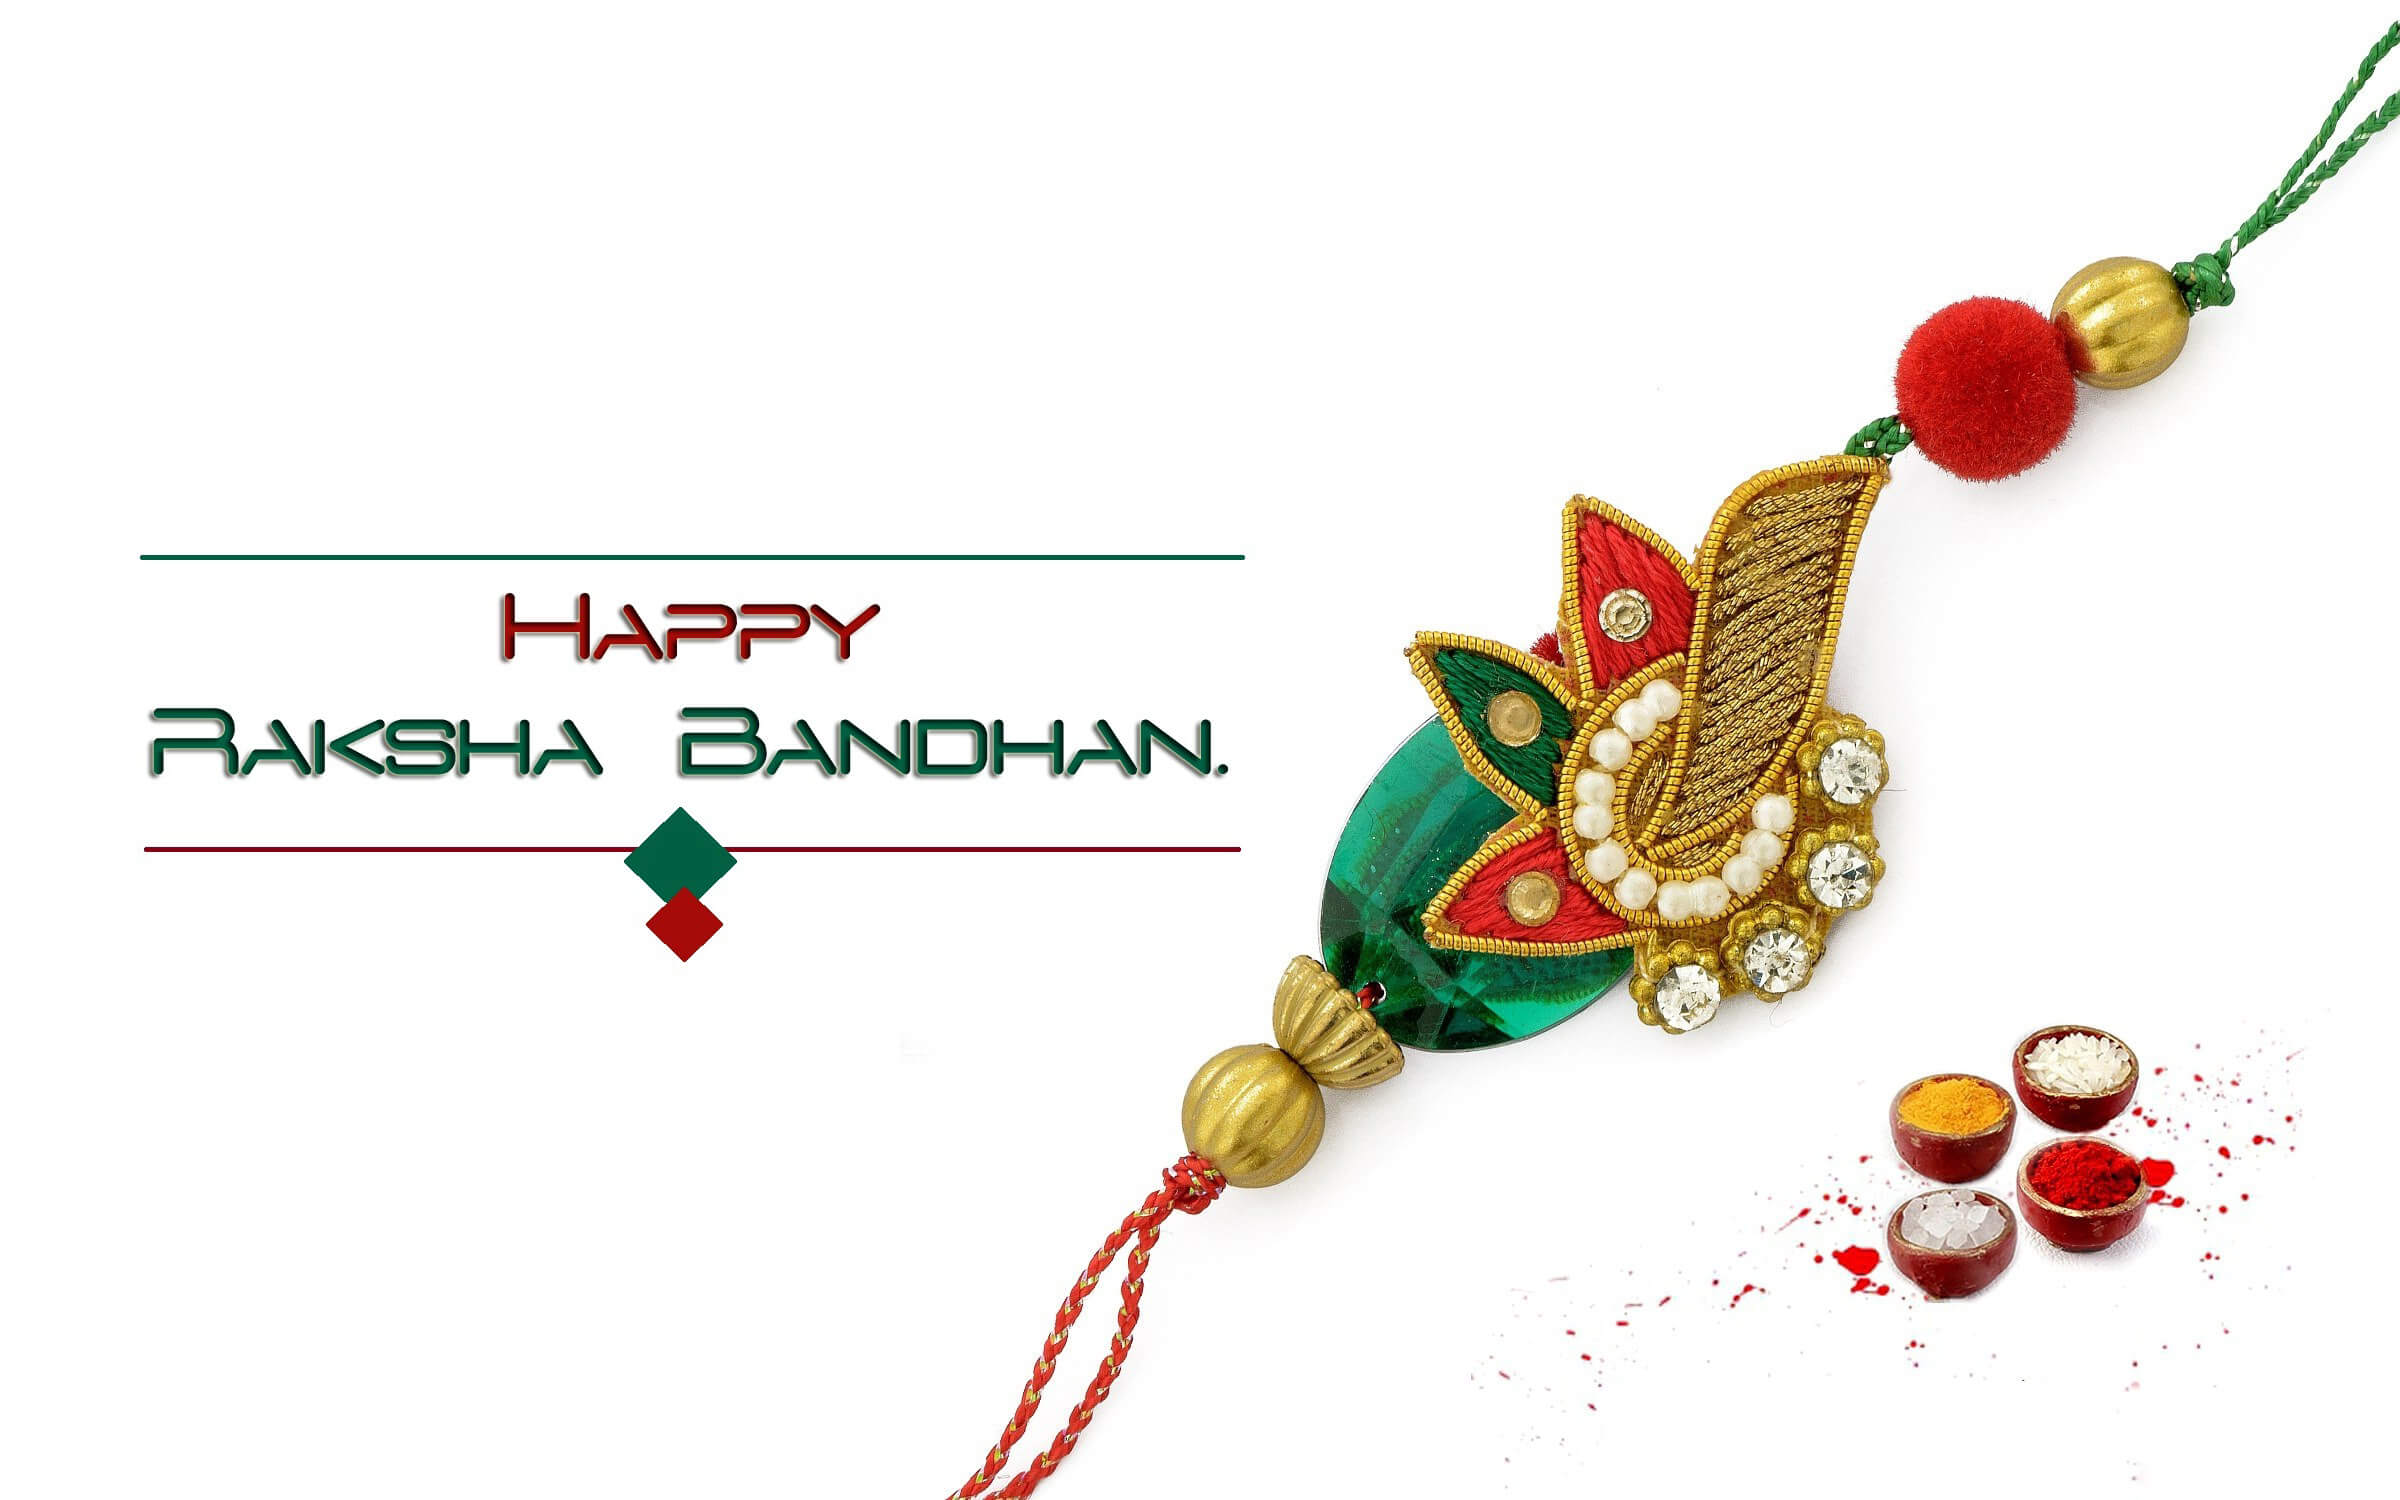 happy Raksha Bandhan 2017 images wallpapers wishes